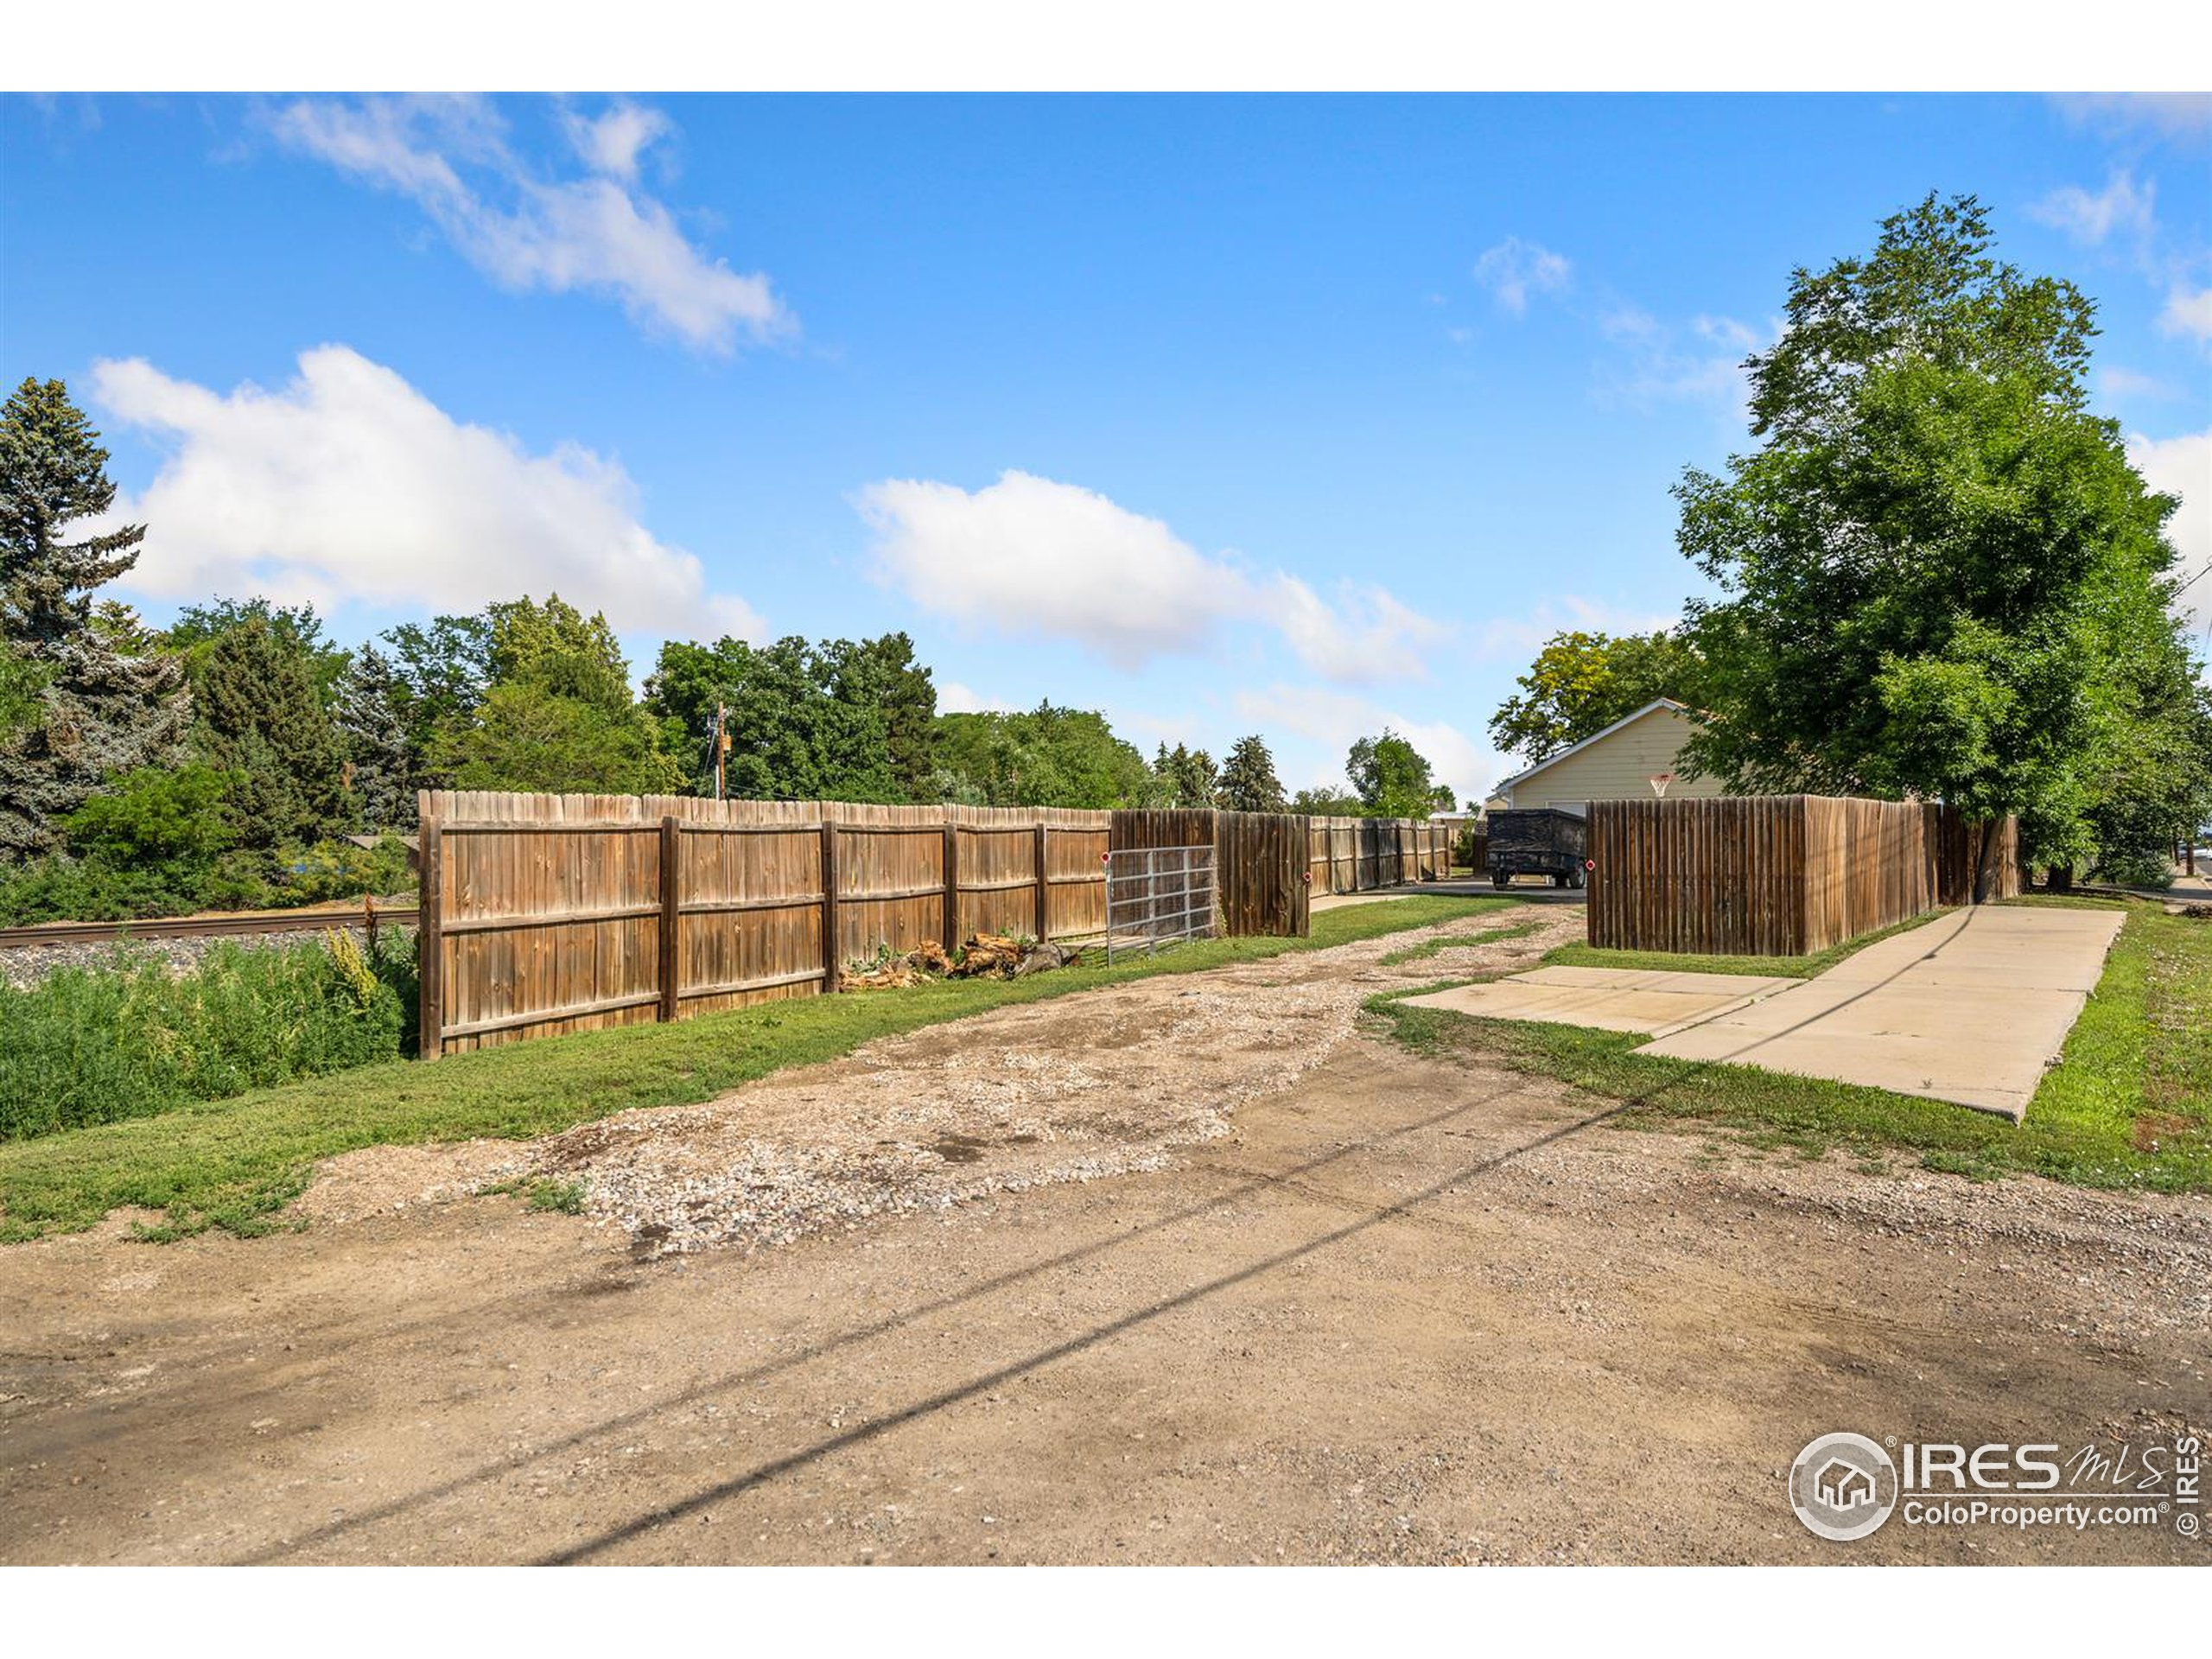 TONS of land right in the middle of town!  Plenty of room for an RV, toys, trailers, and more.